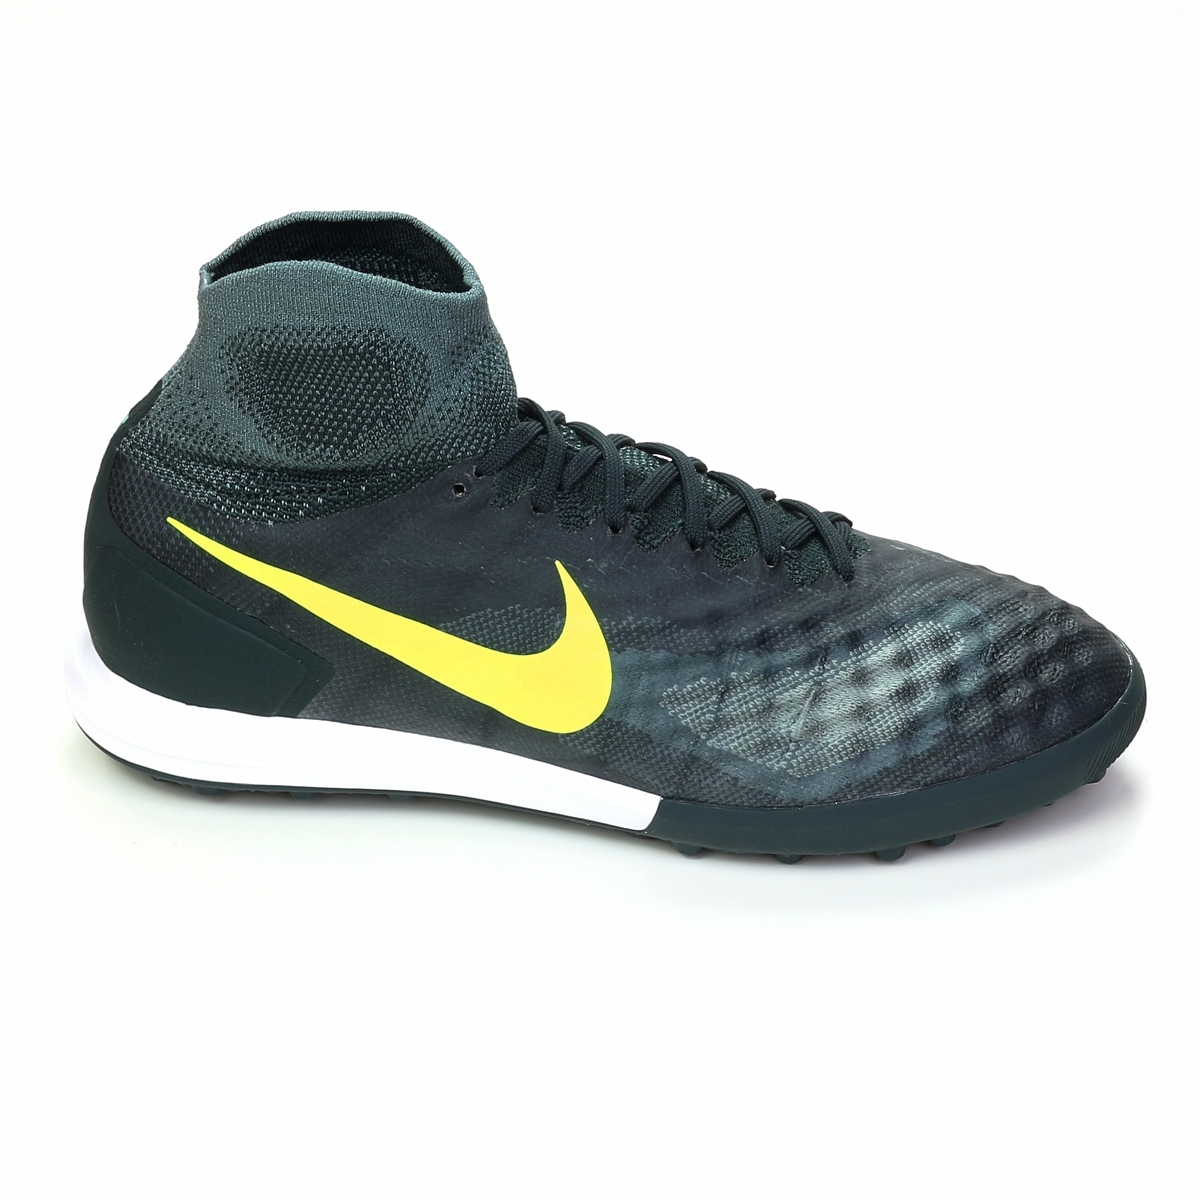 98758d531bf8 Nike MagistaX Proximo TF Turf Soccer Shoes (Seaweed Volt Hasta Mica ...